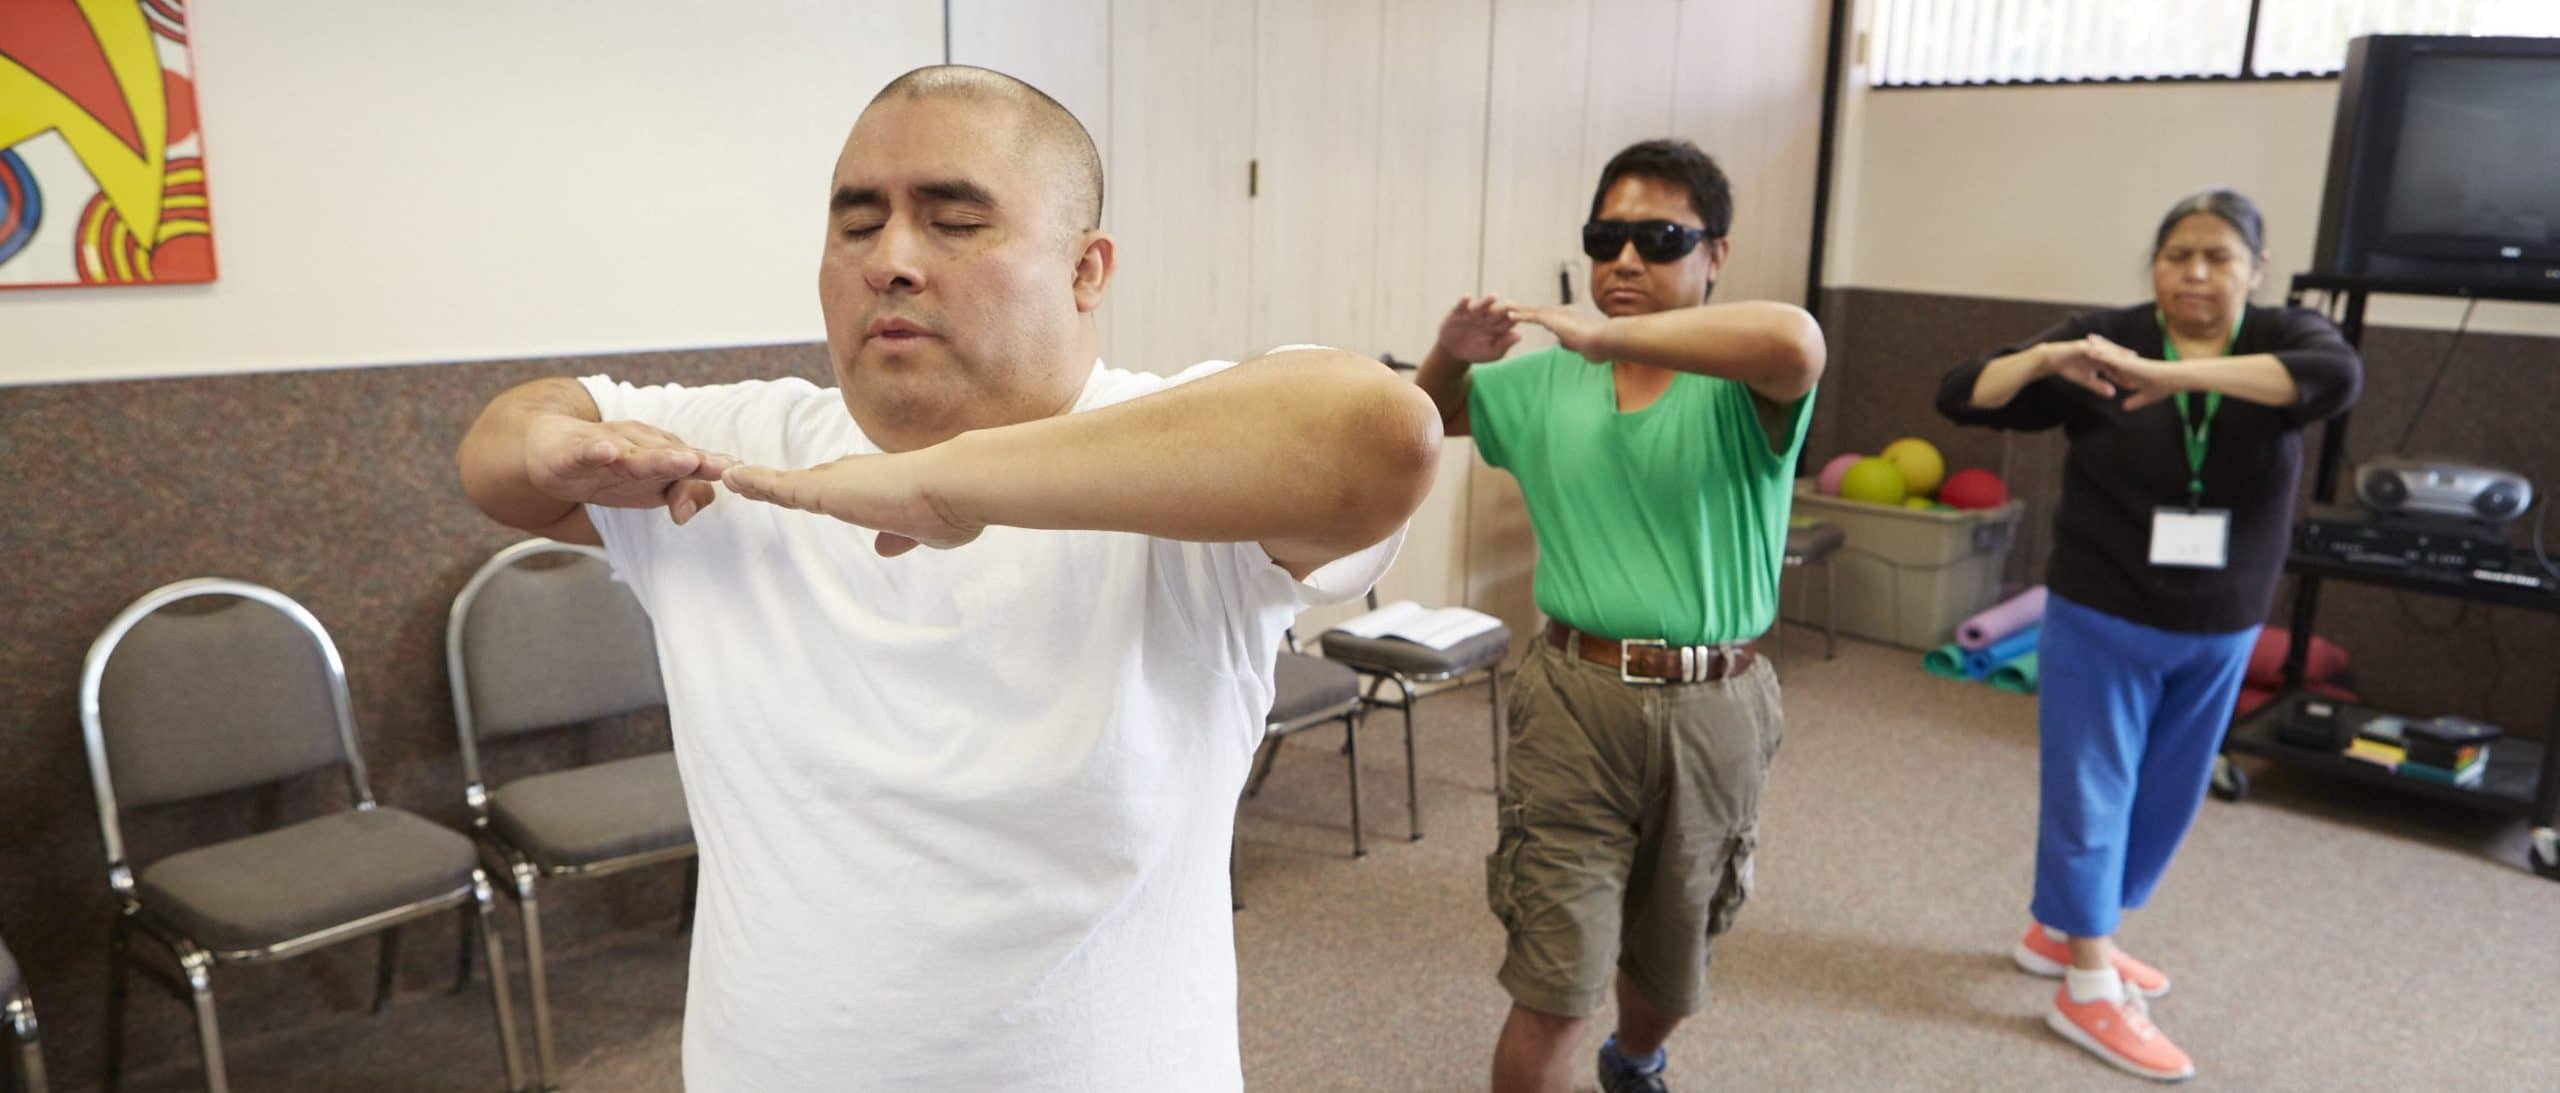 3 people with hands raised in front of their chins participating in a Tai Chi class